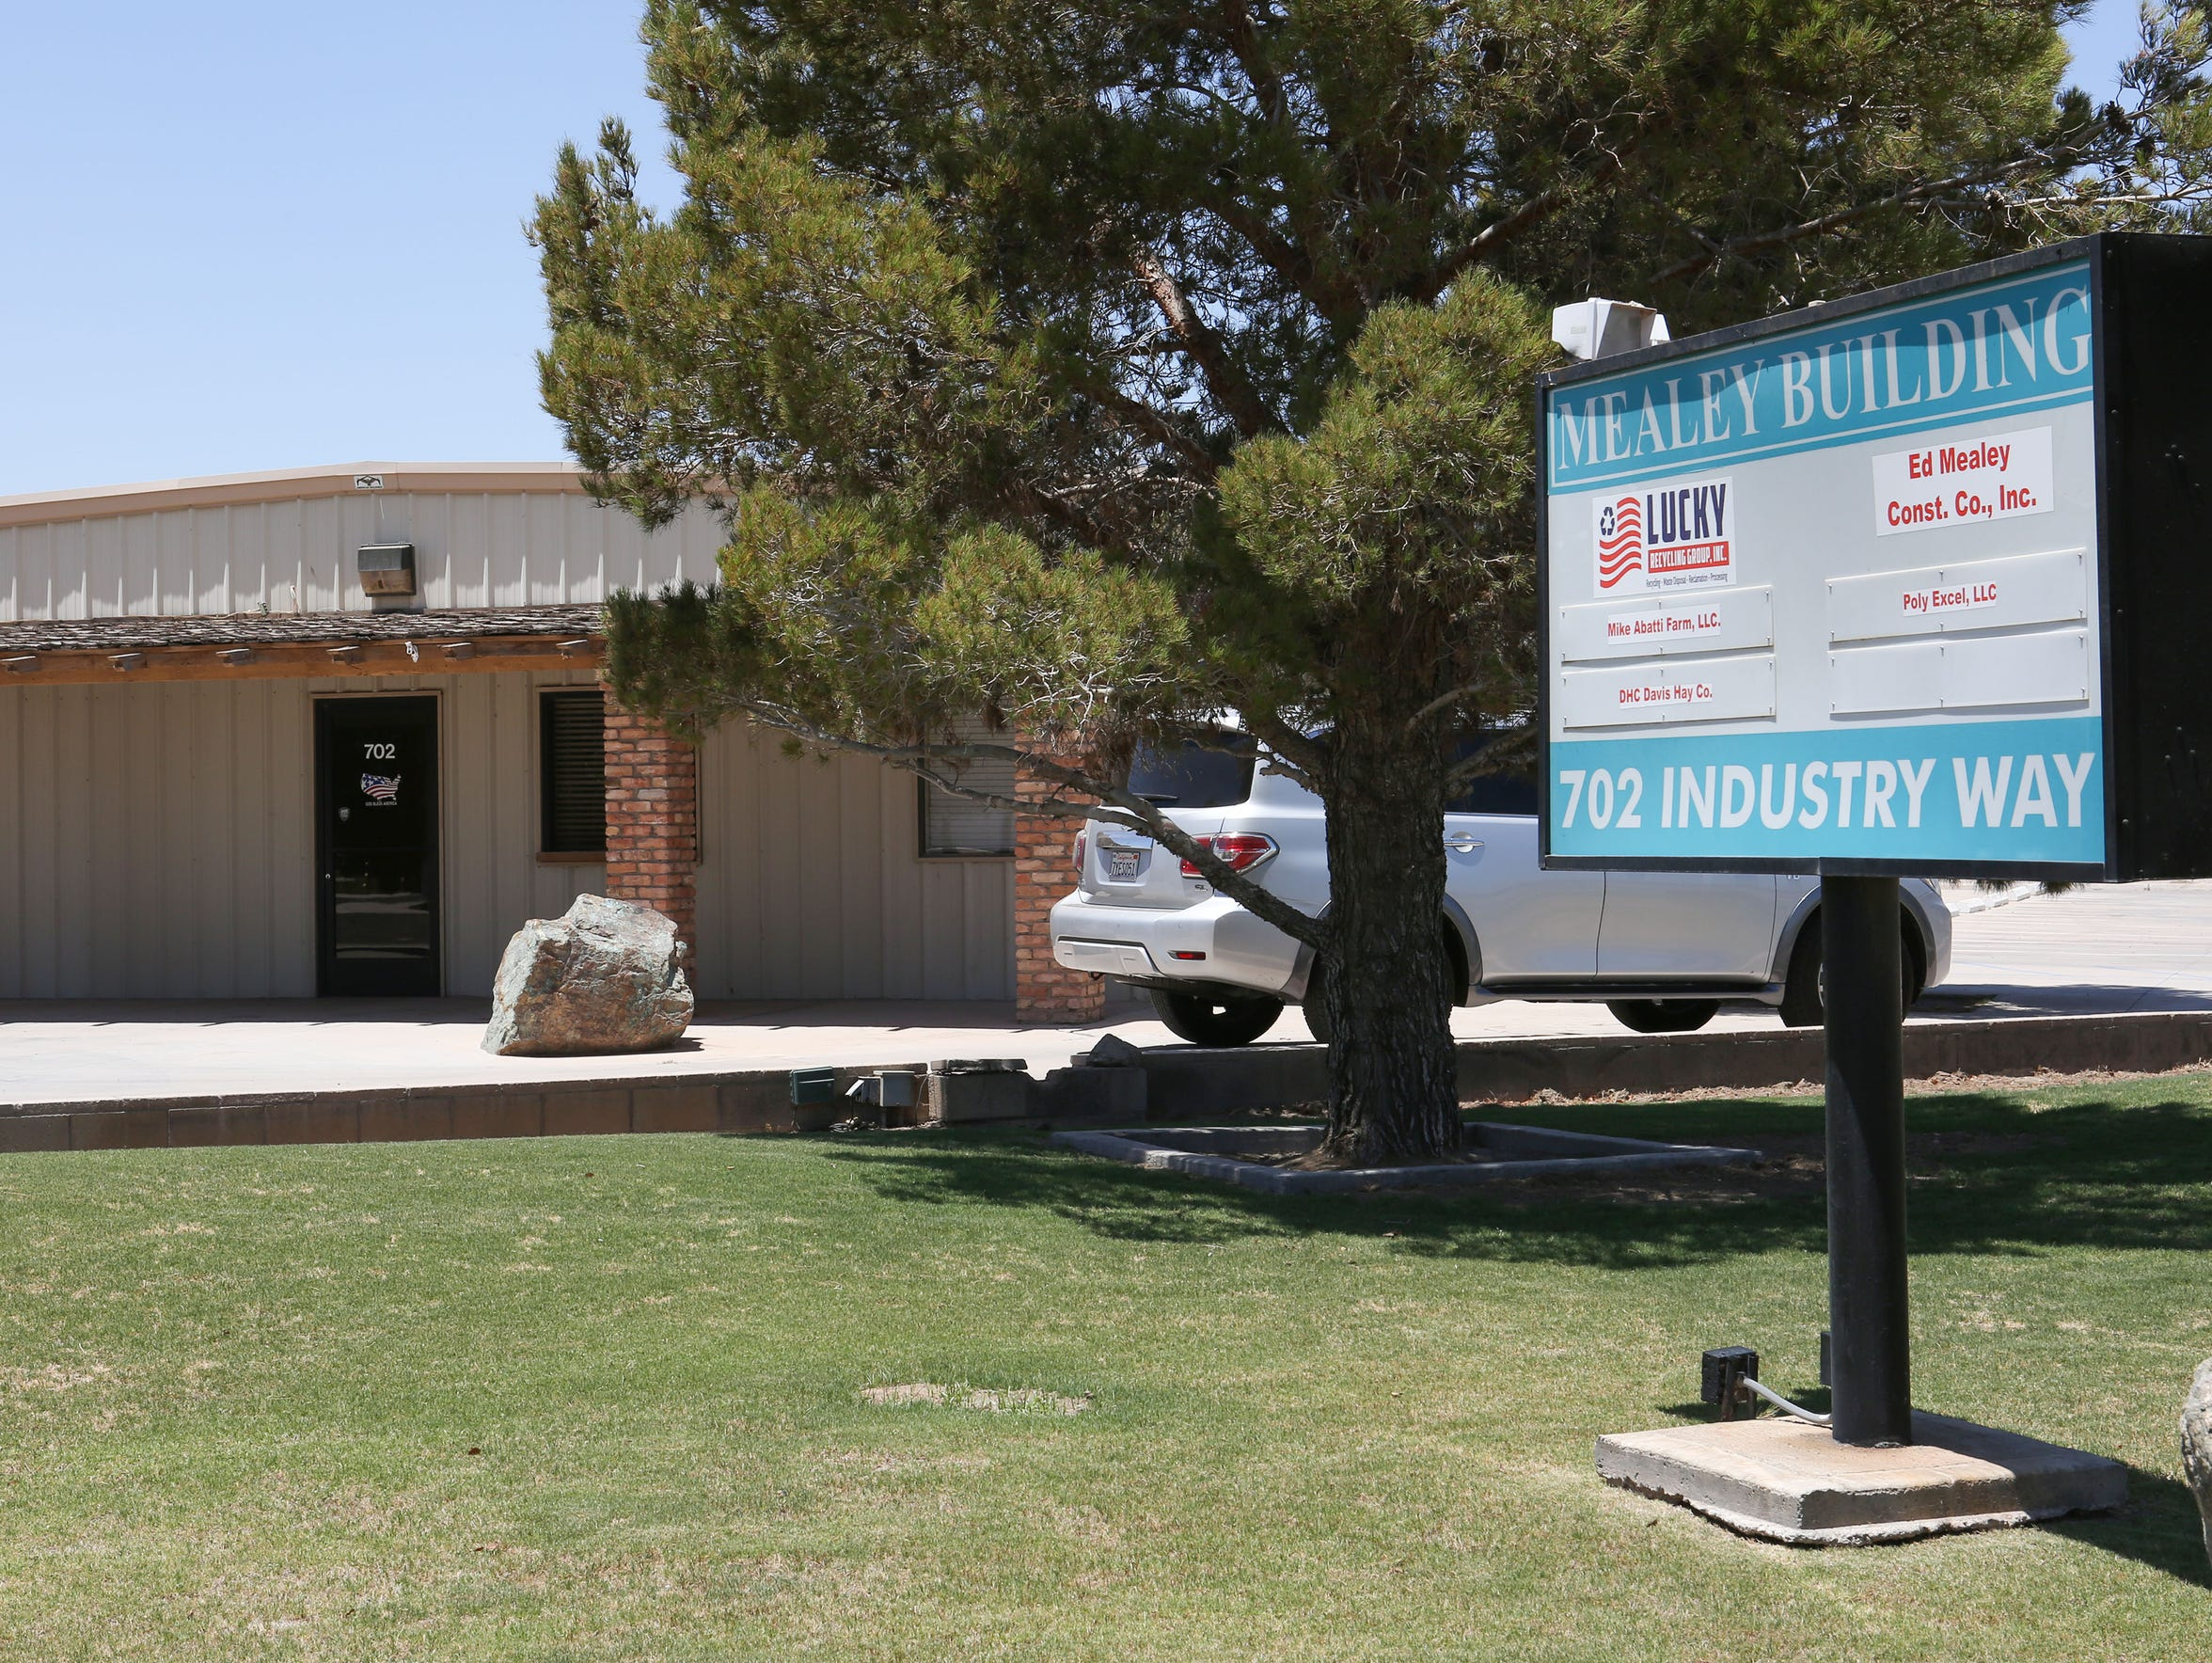 Outside the Mealey Building in El Centro, California,